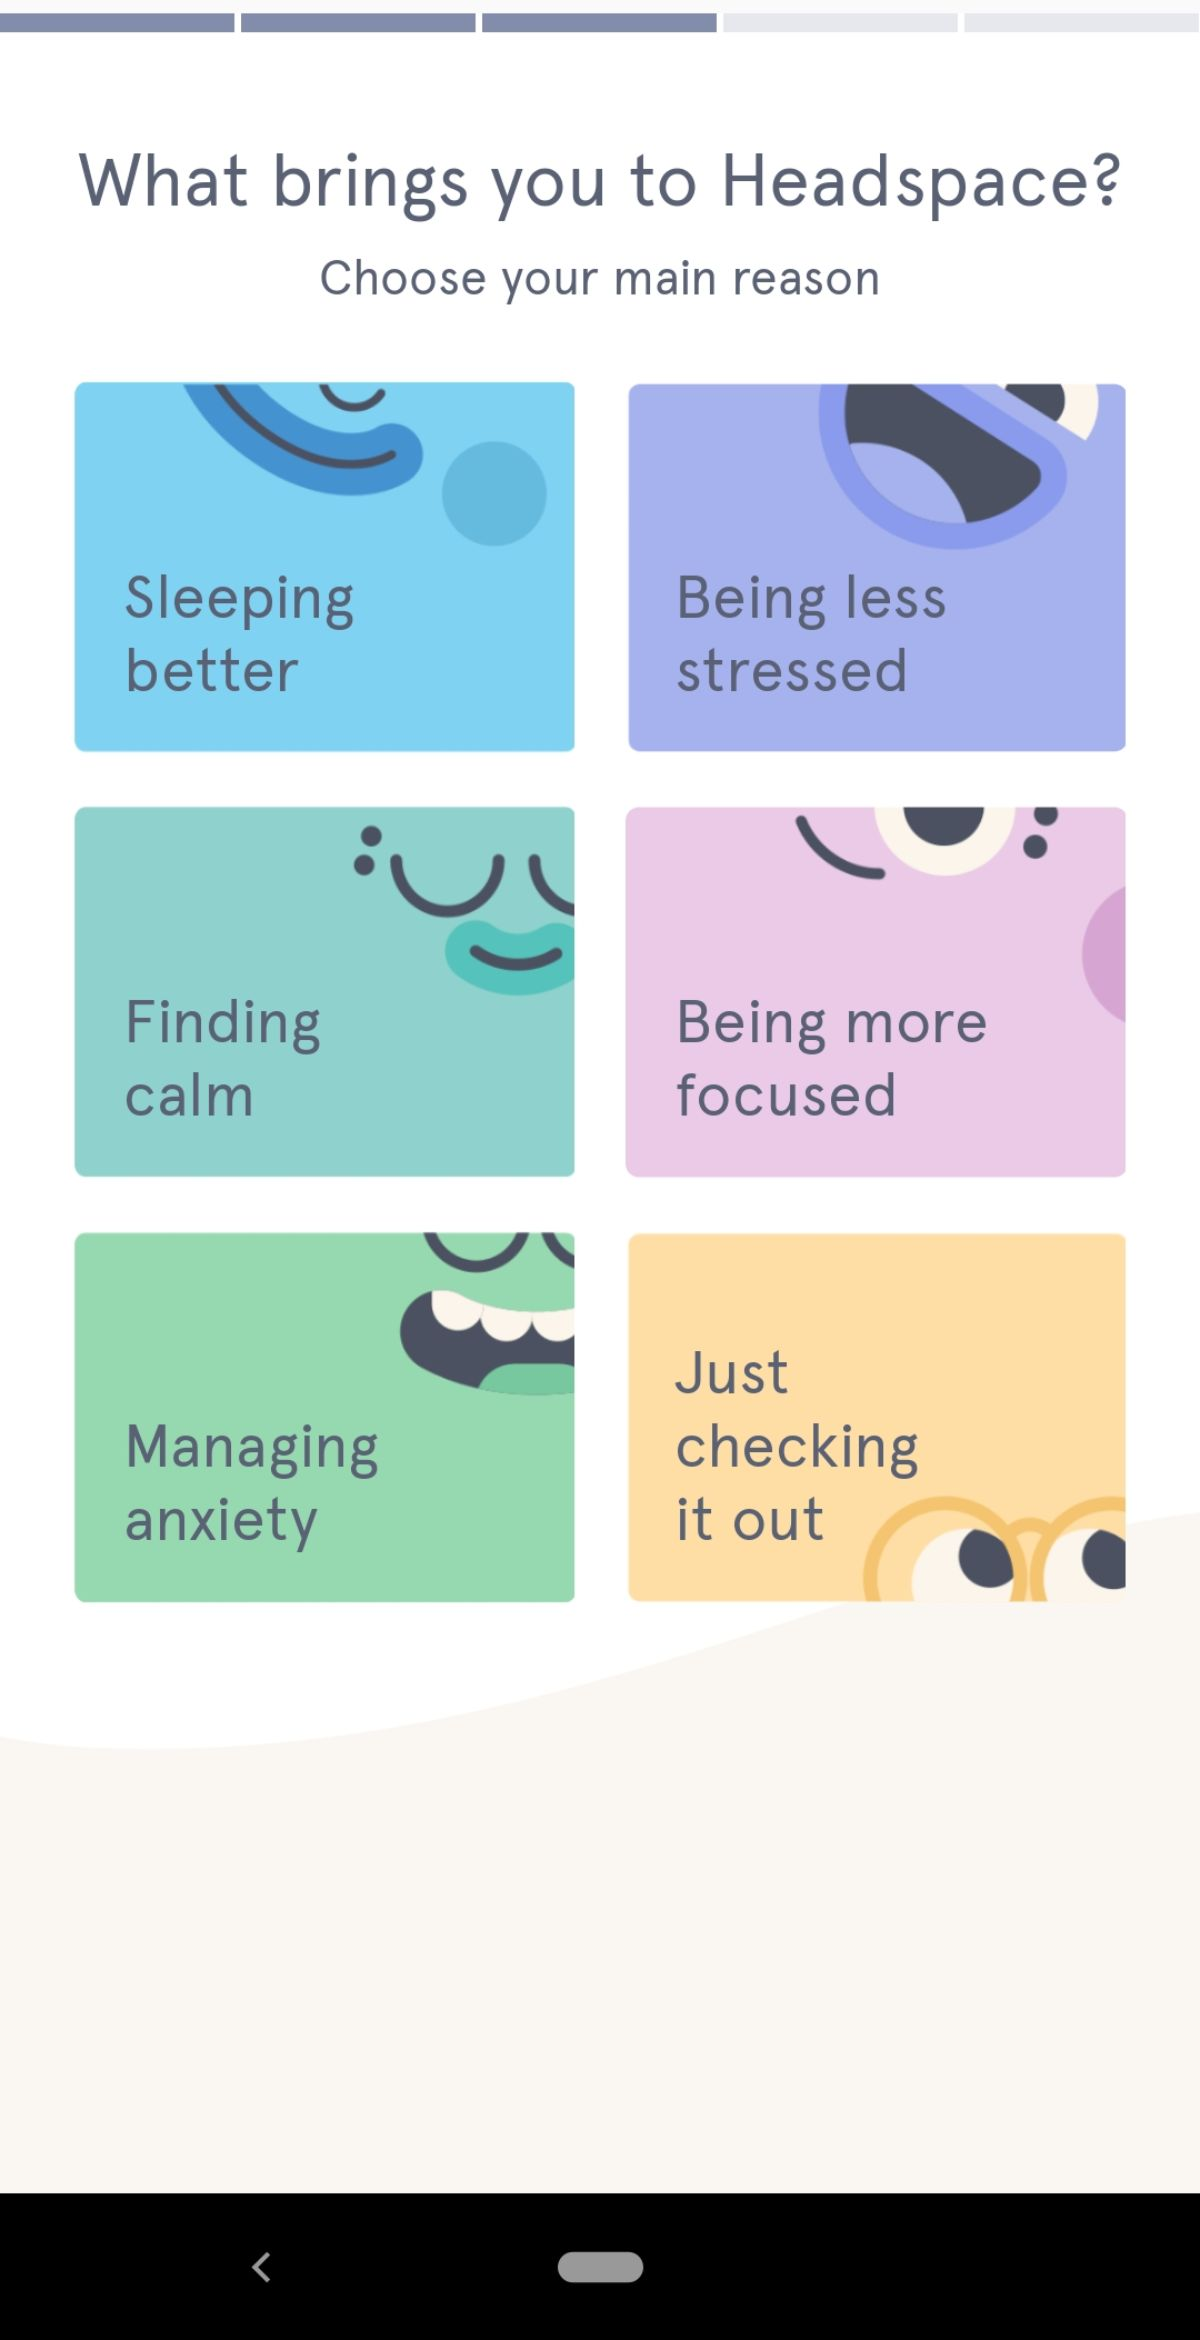 "this is a screenshot of headspace's mobile app onboarding that shows customization options. The image shows a question ""what brings you to headspace"" and there are 6 options that let users segment themselves by use case. This is an example of using customization UX to create more personalized experiences."